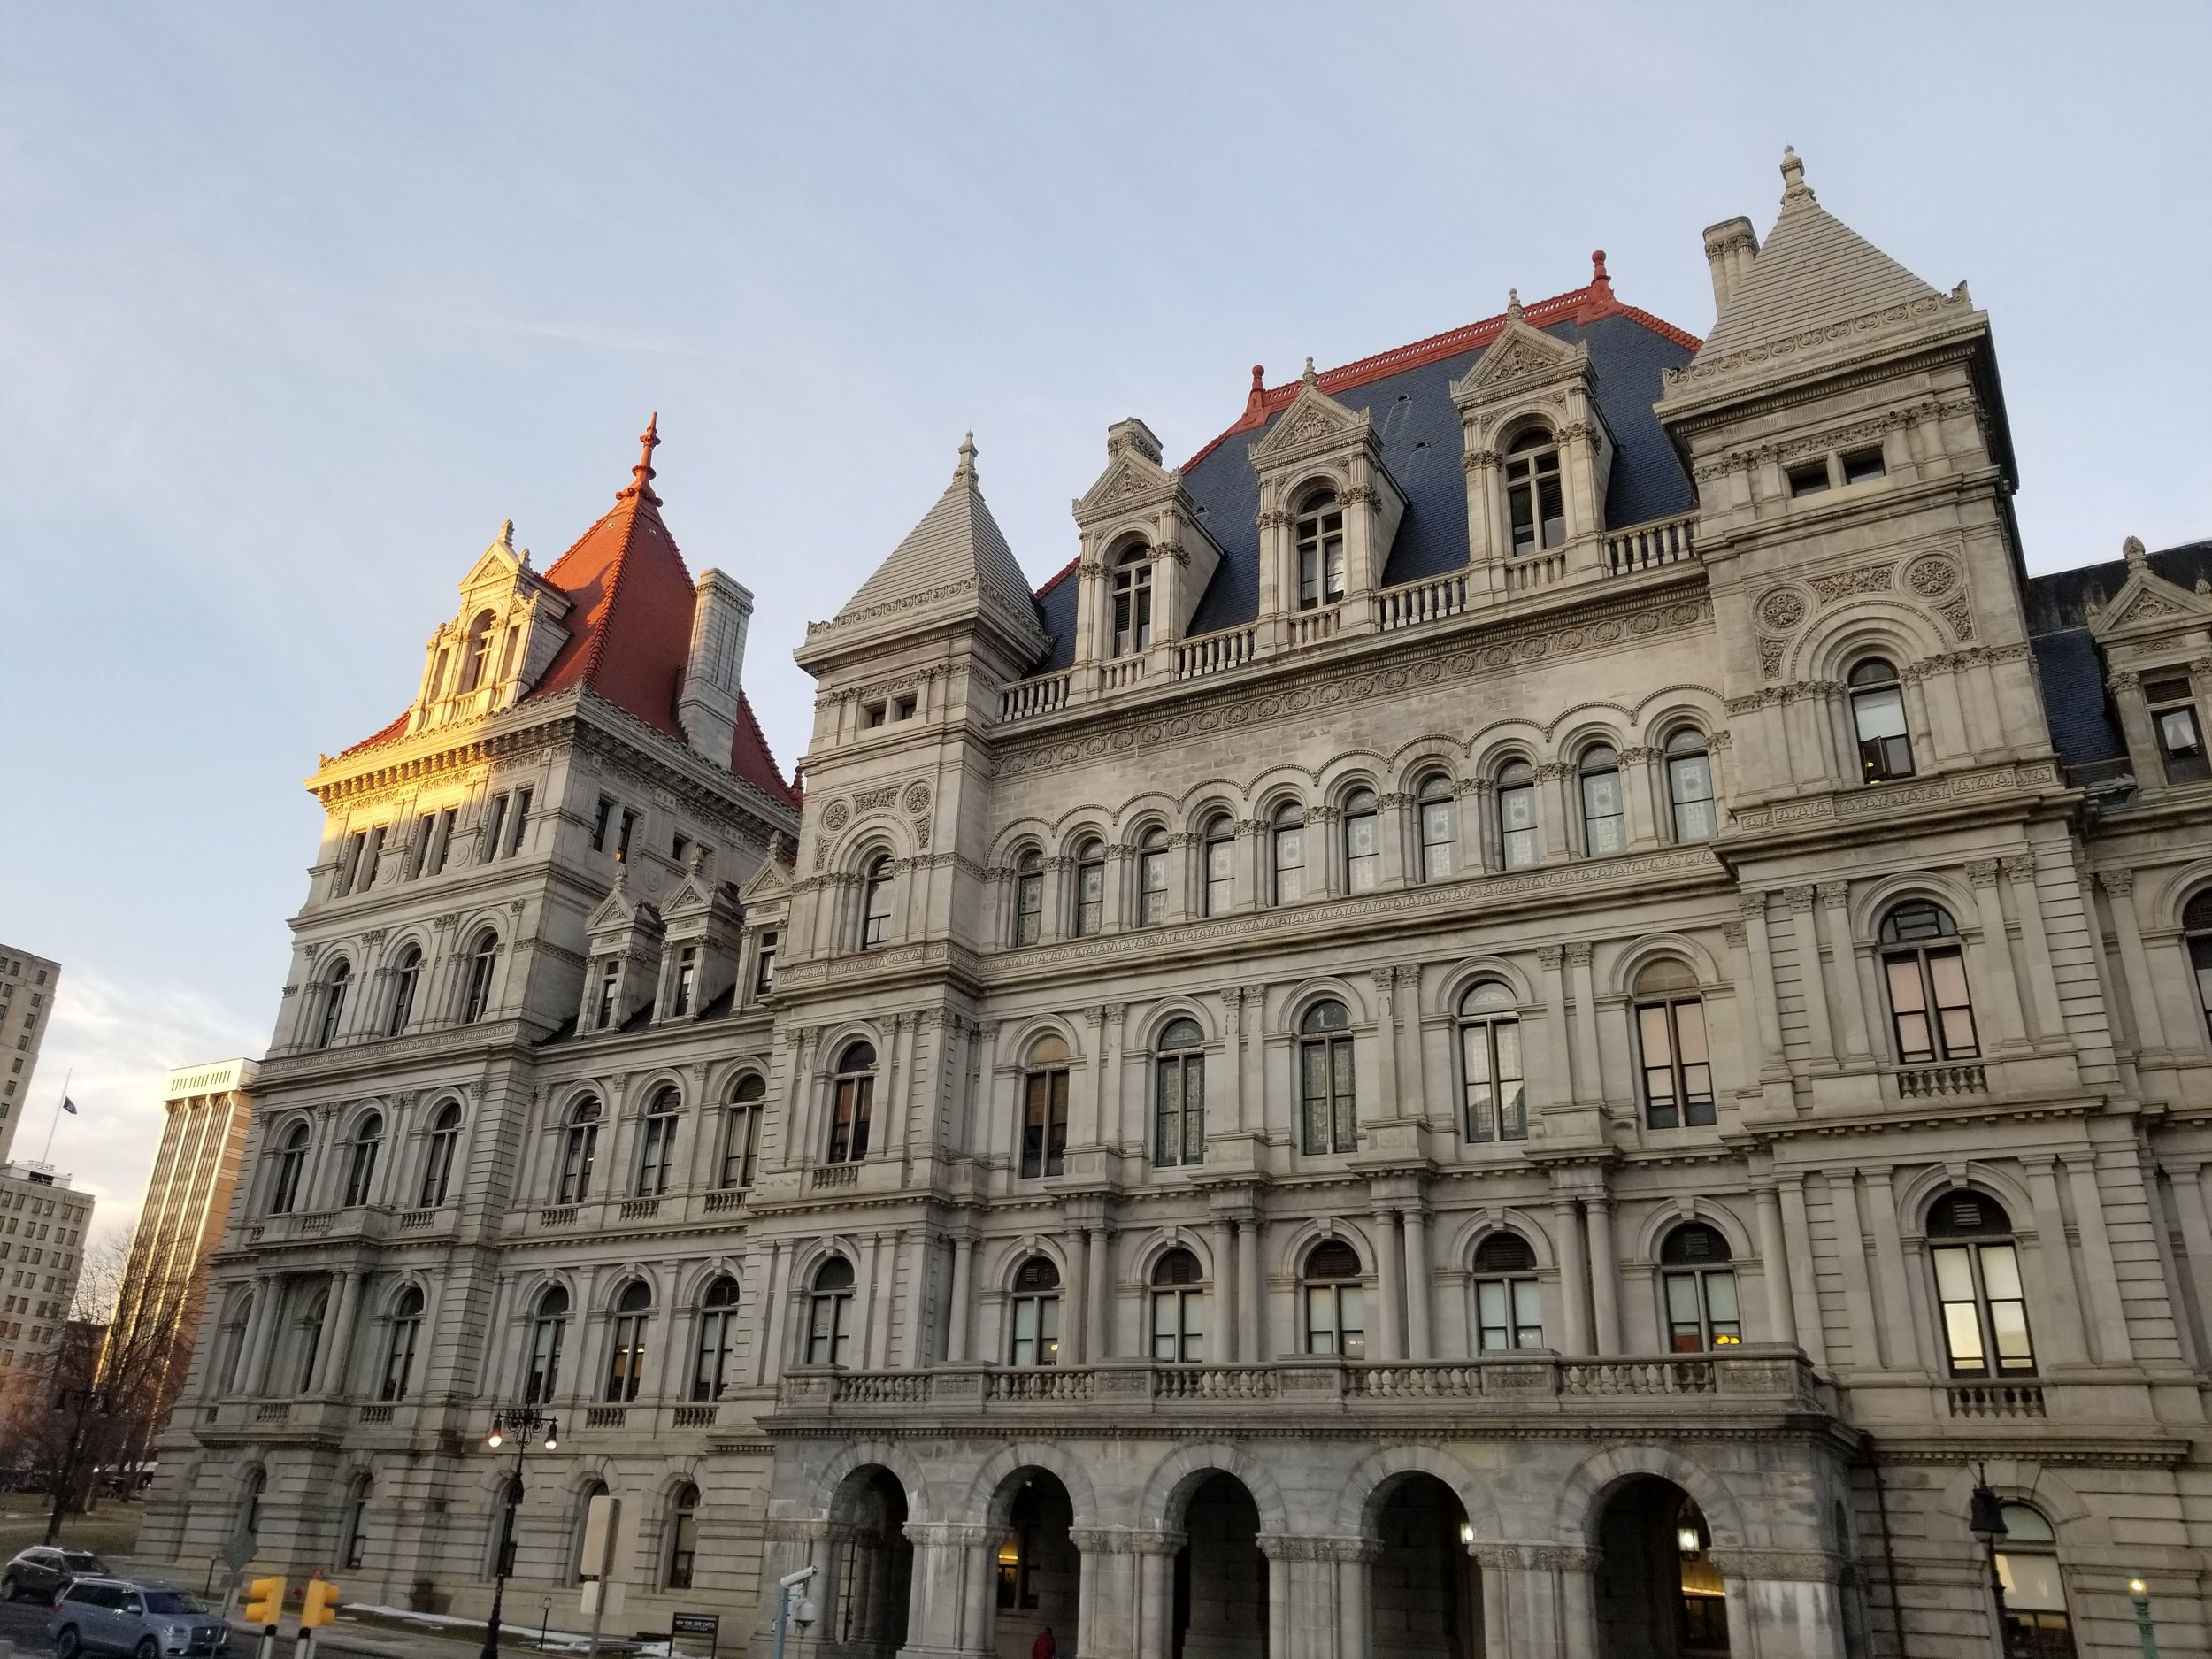 Advocating for New York - Our Public Policy Program develops and advocates for preservation policies that impact communities statewide.